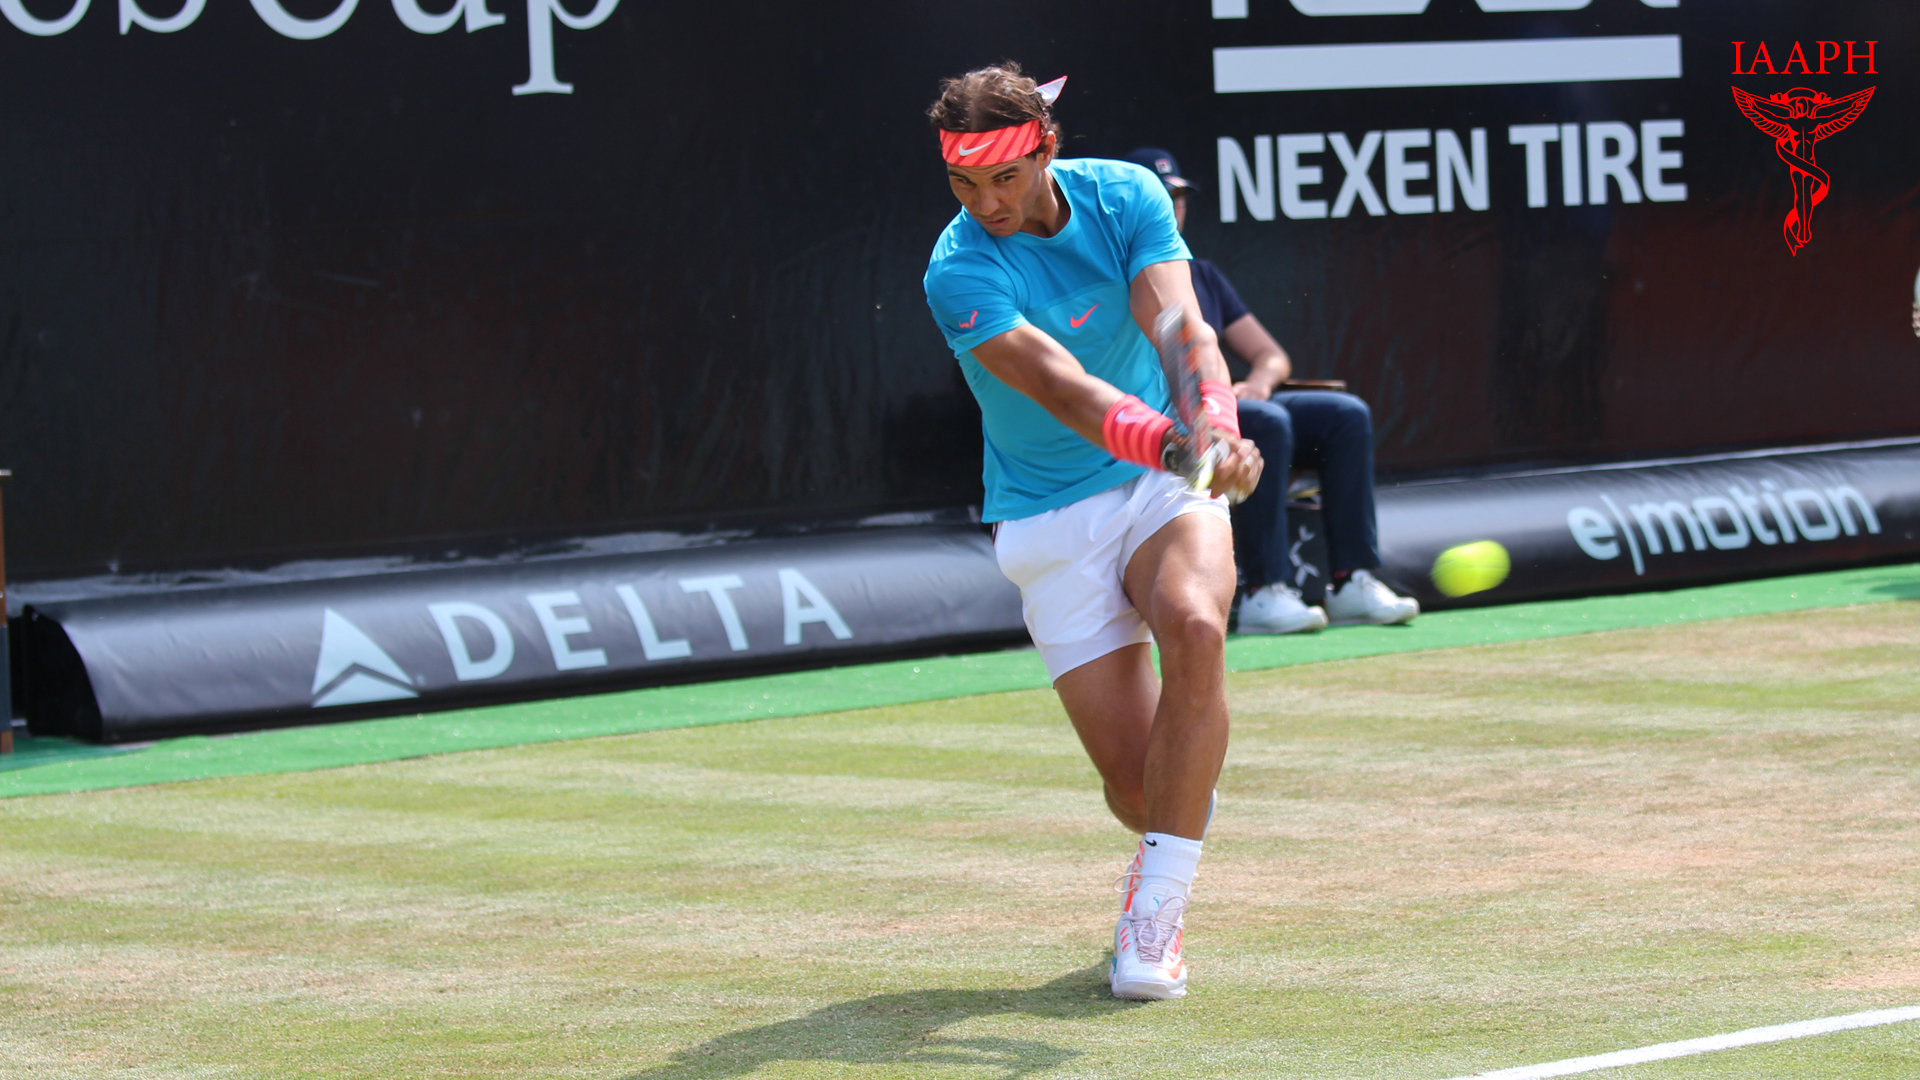 Nadal is one of the best players of the backhand.